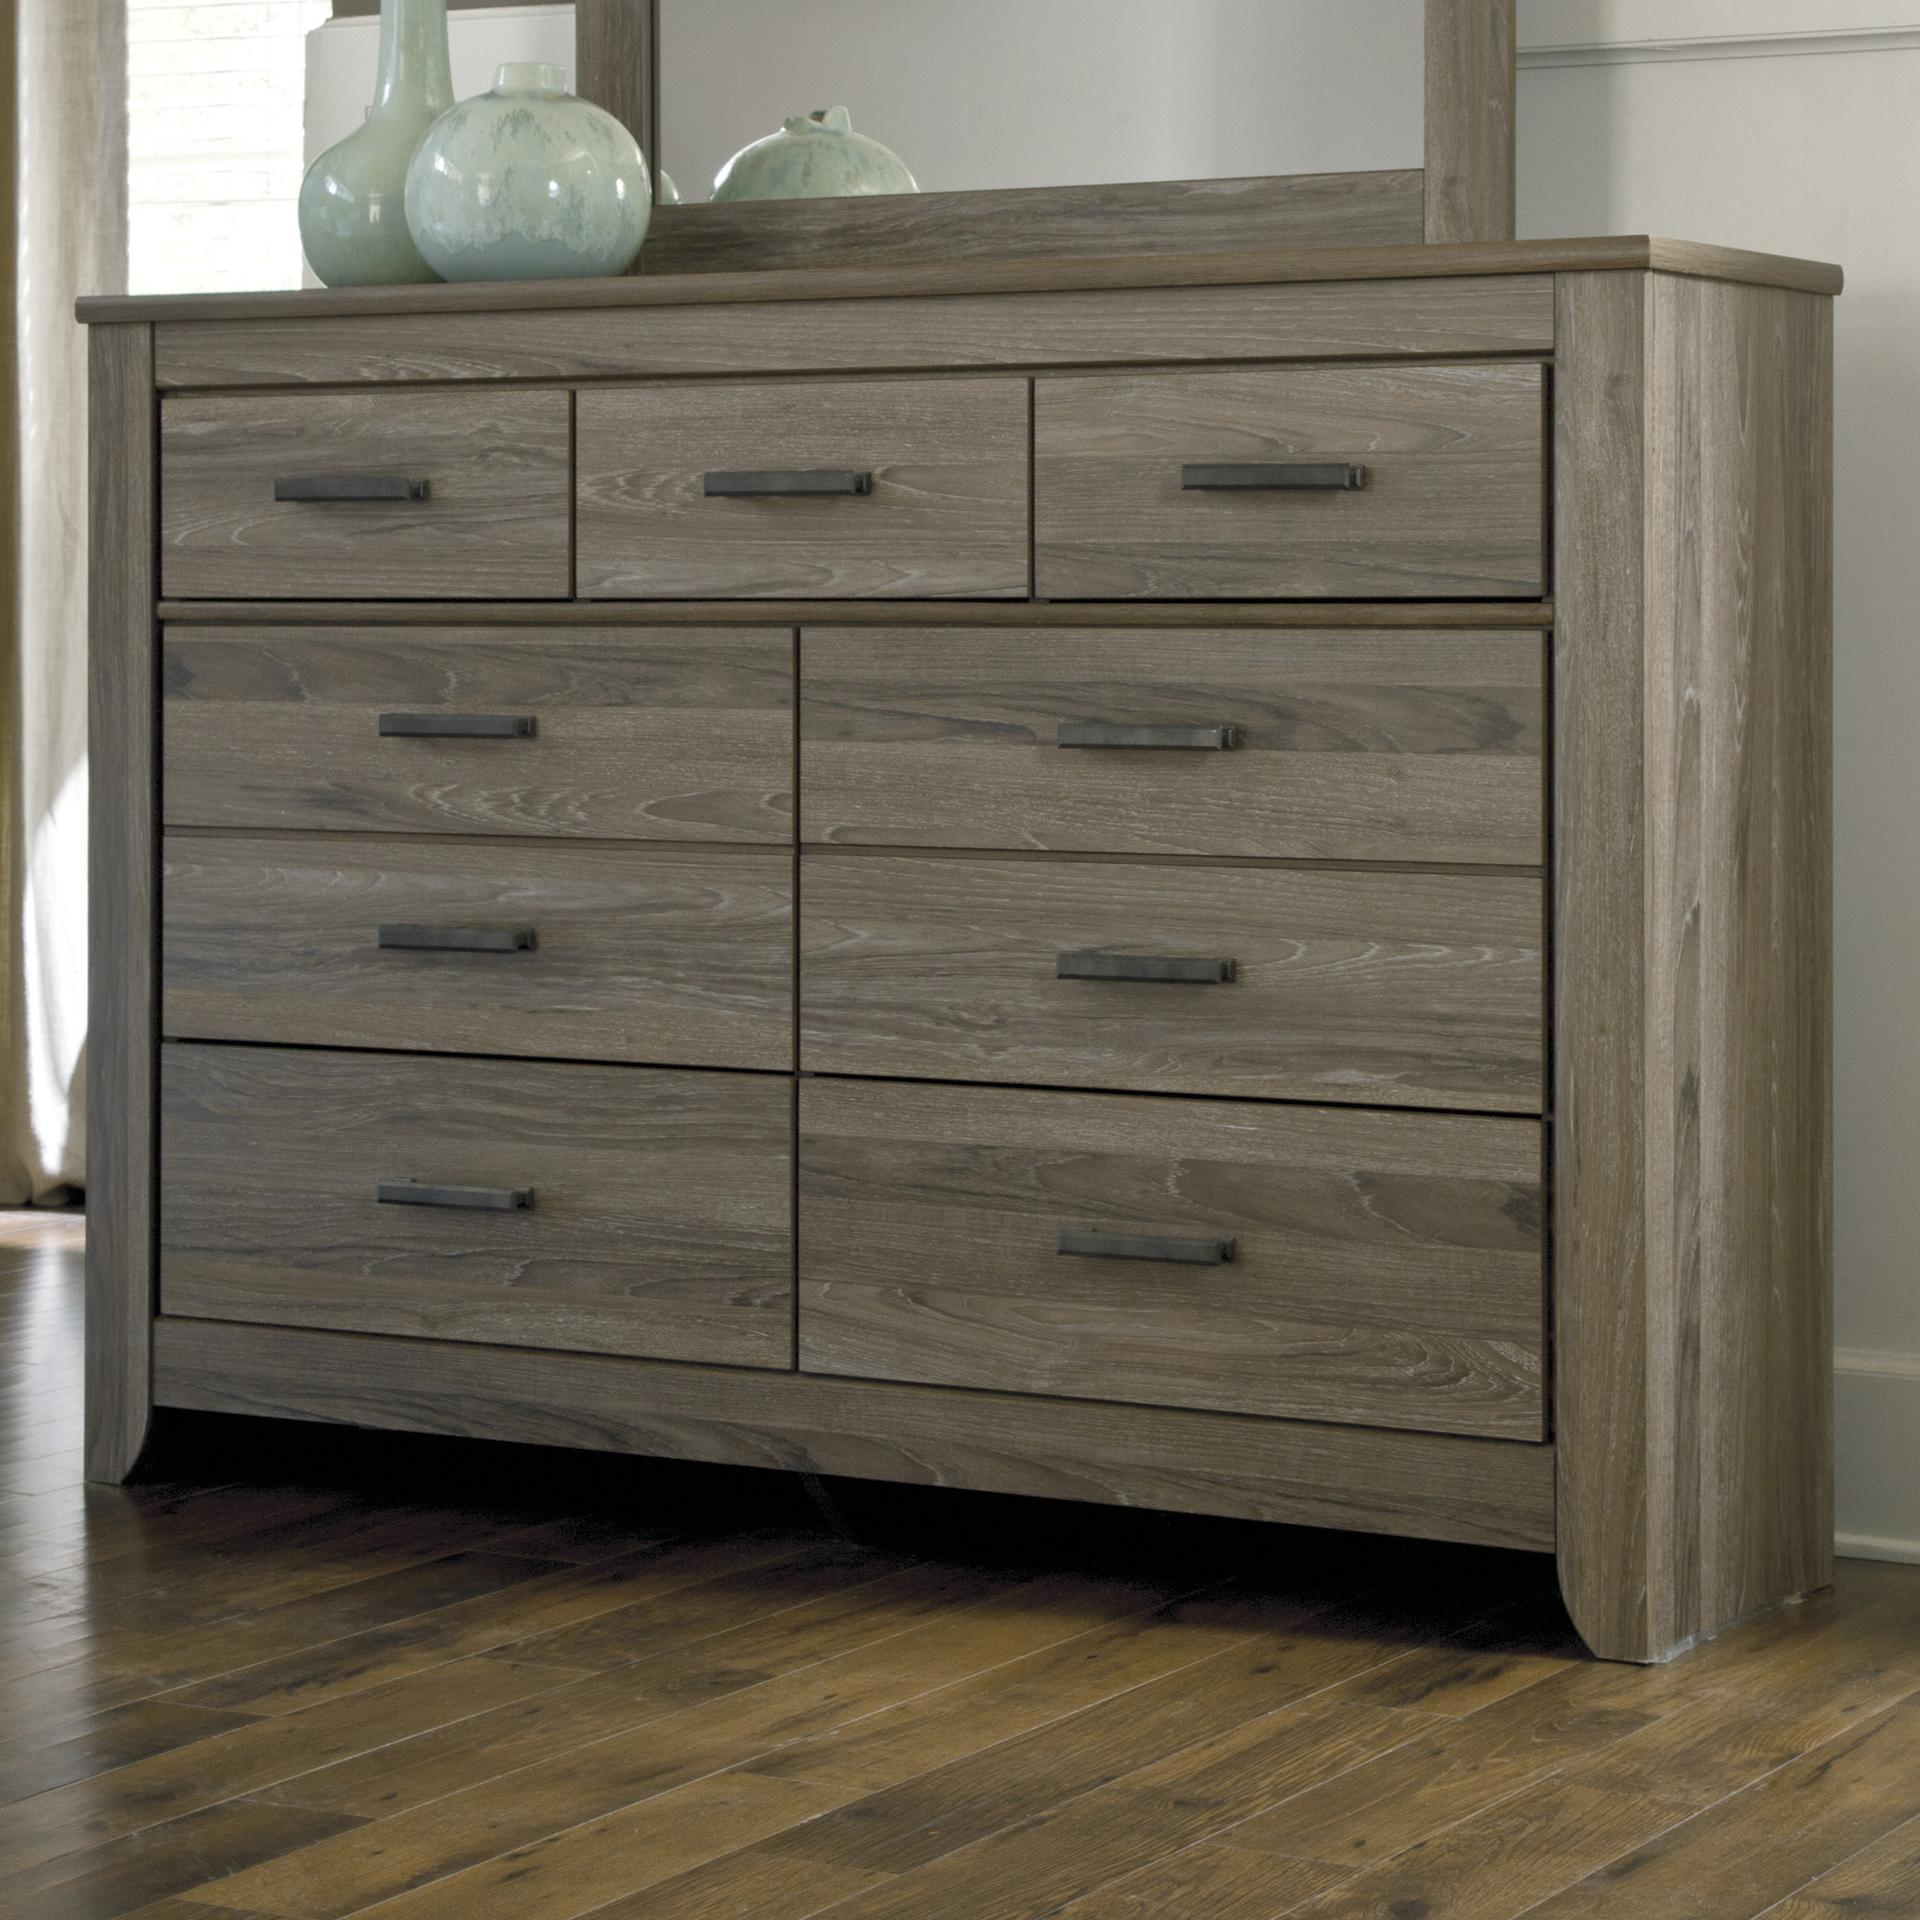 wood with stain chocolate yosemite iron to hand accents reclaimed modus and emulate from made rich dresser barnwood is bedroom distressed collection the forged solid dark a